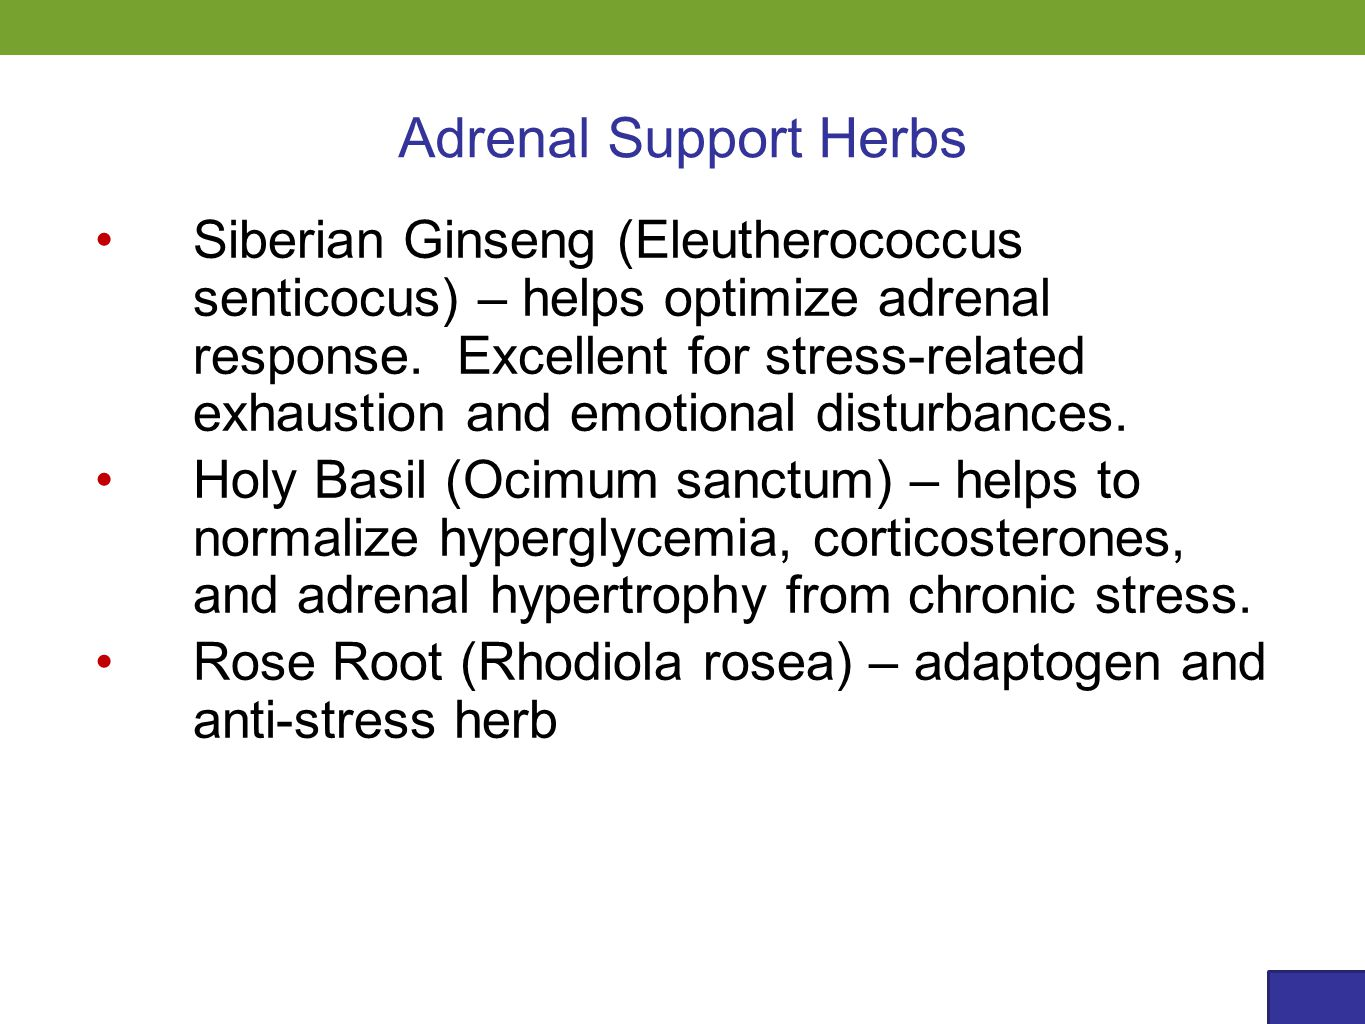 Siberian Ginseng (Eleutherococcus senticocus) – helps optimize adrenal response. Excellent for stress-related exhaustion and emotional disturbances. H